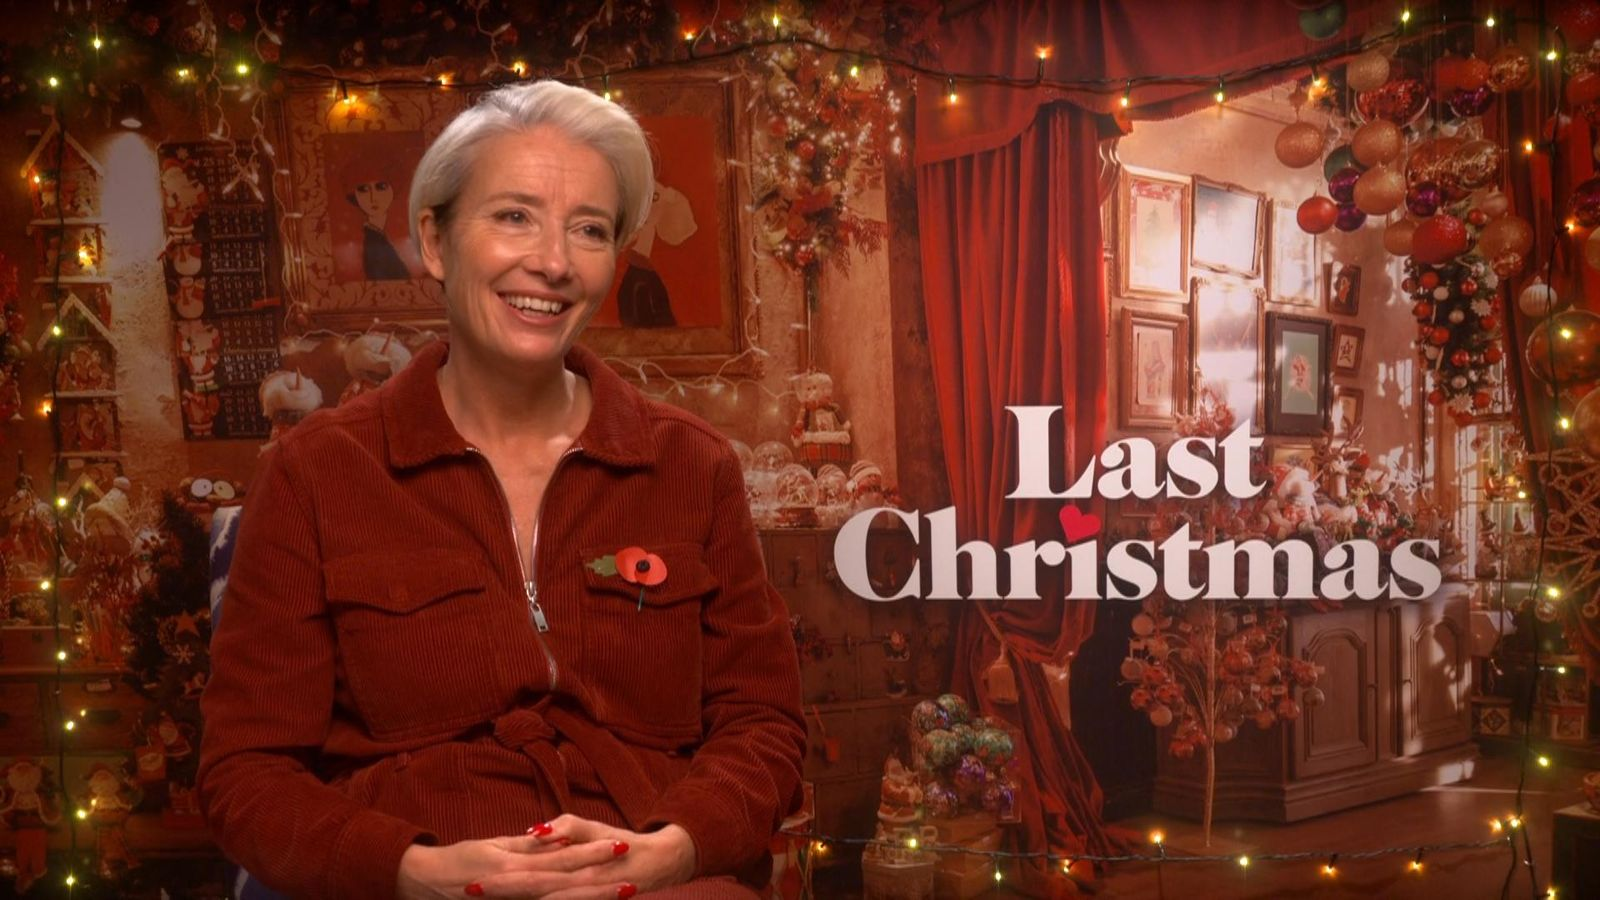 Last Christmas: Impossible not to mention Brexit in film, says Emma Thompson - Sky News